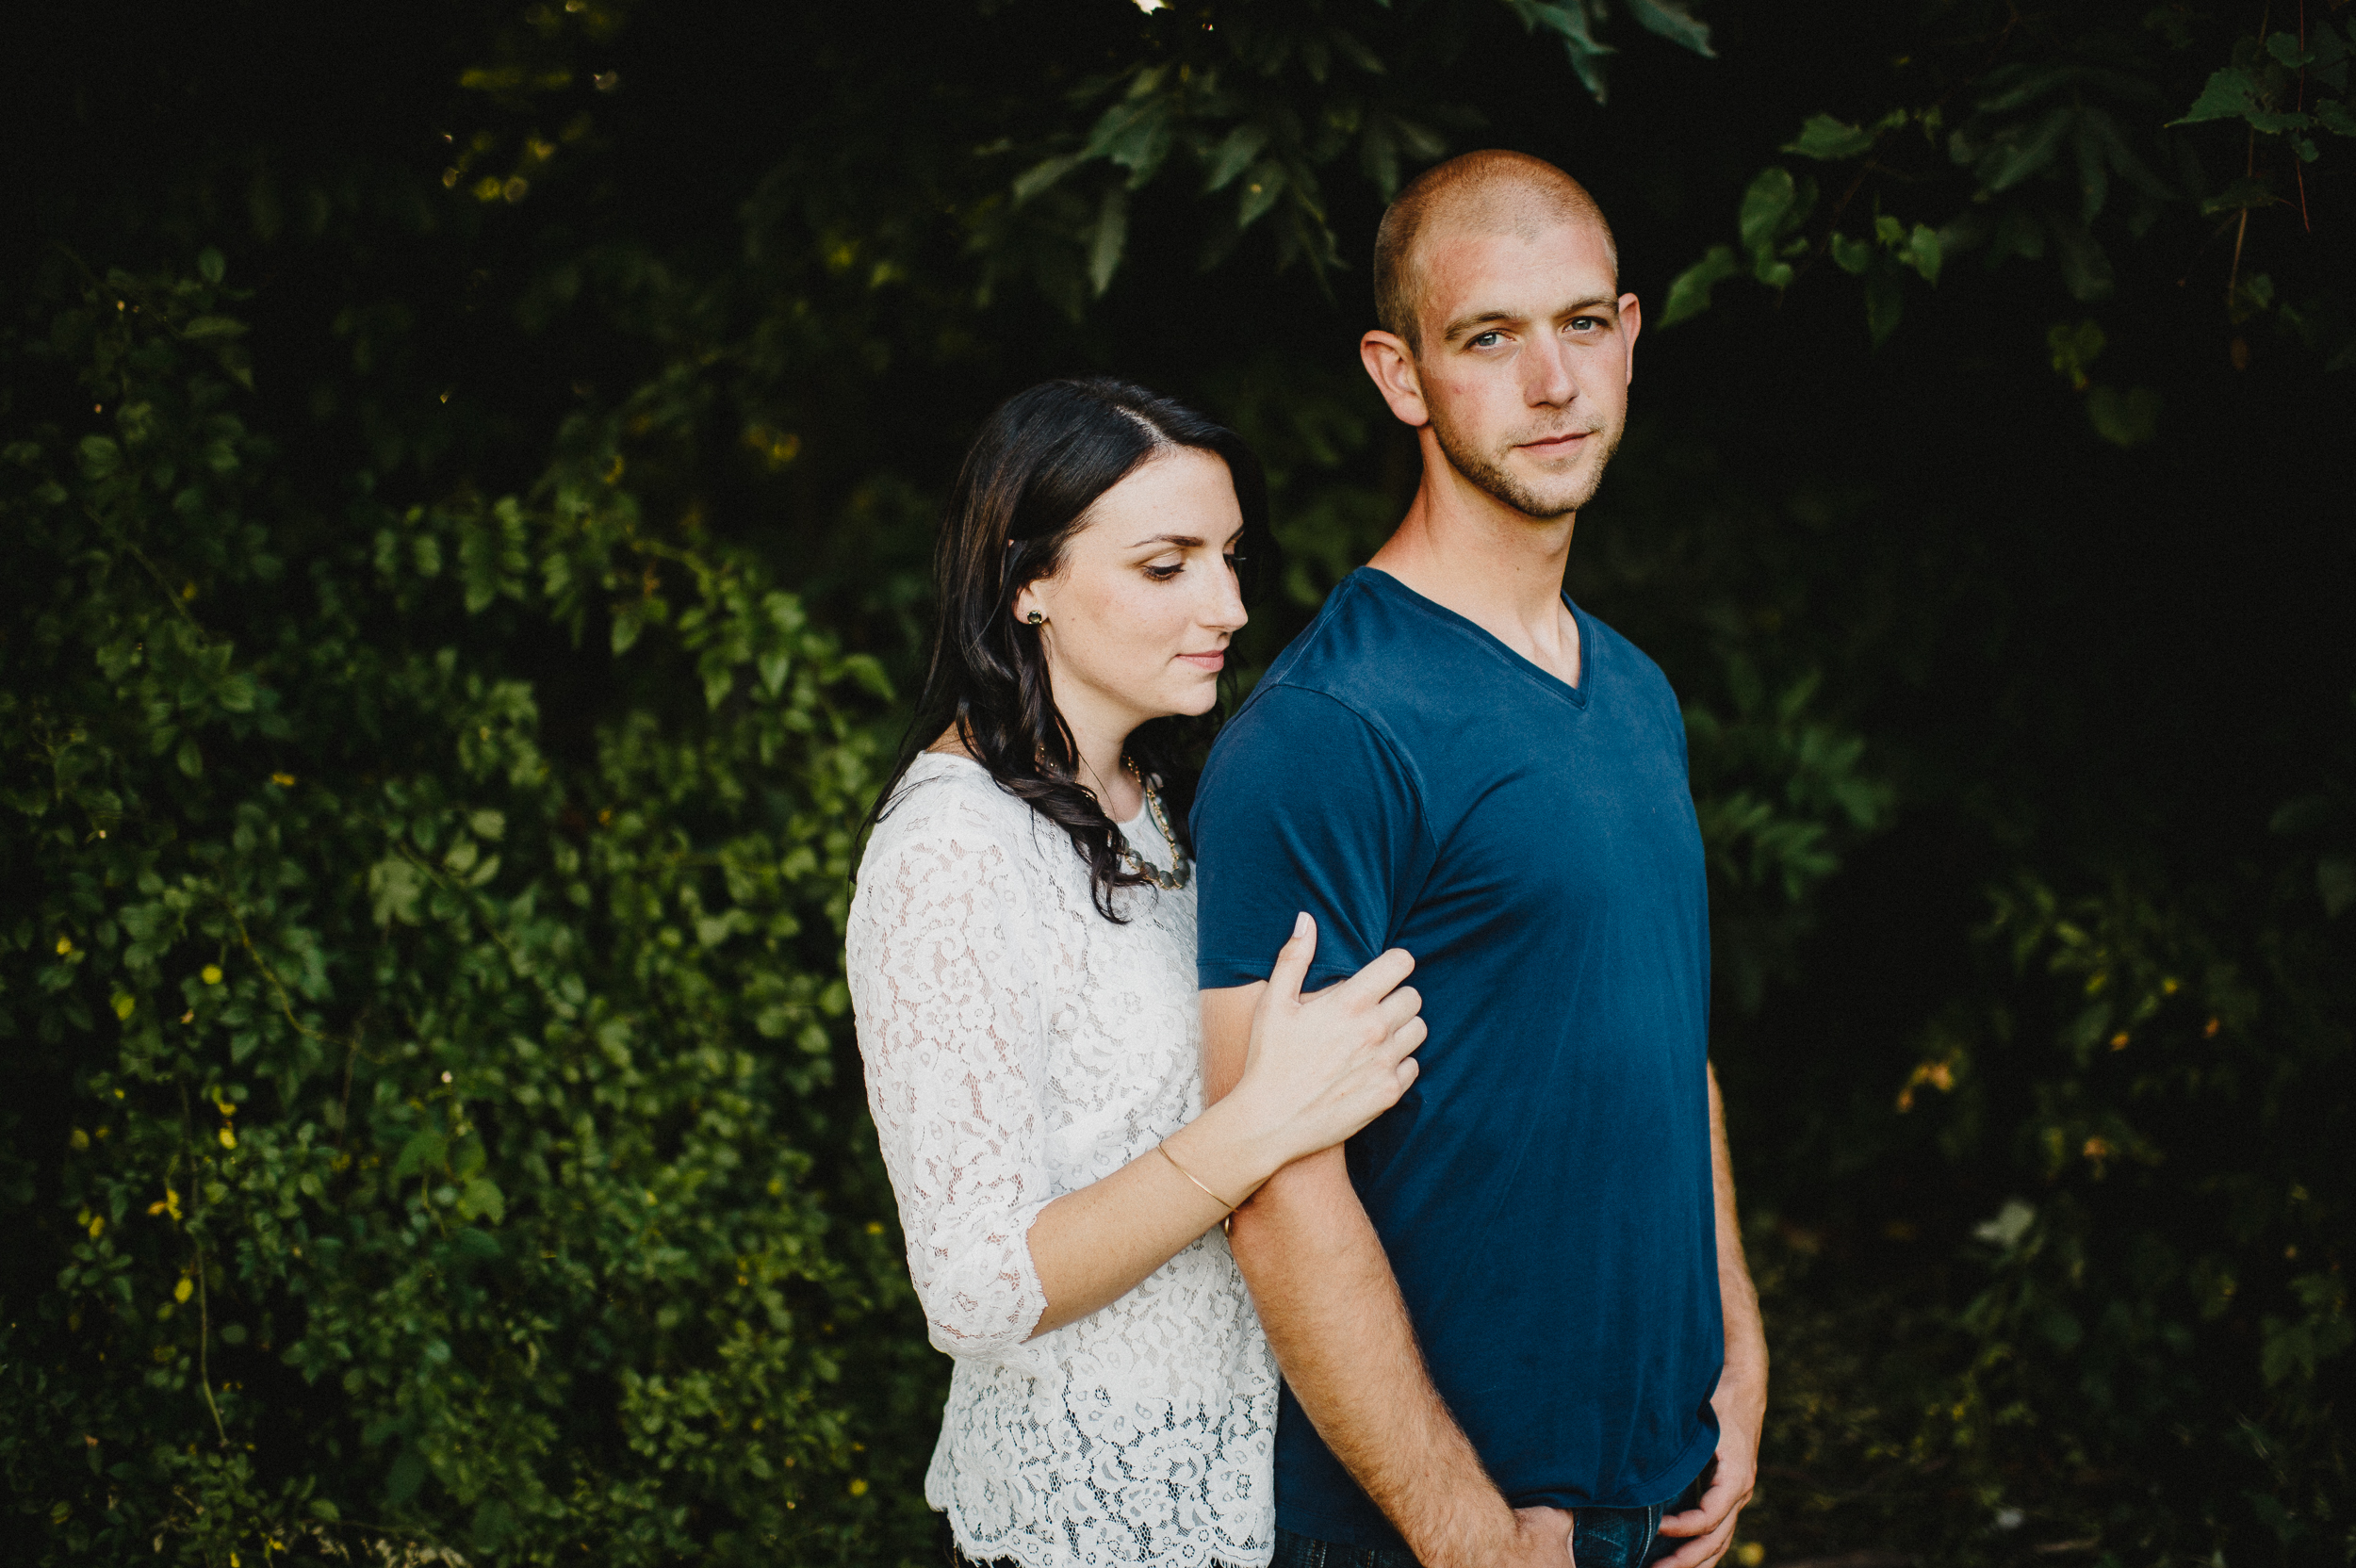 pat-robinson-photography-pa-engagement-session-9.jpg